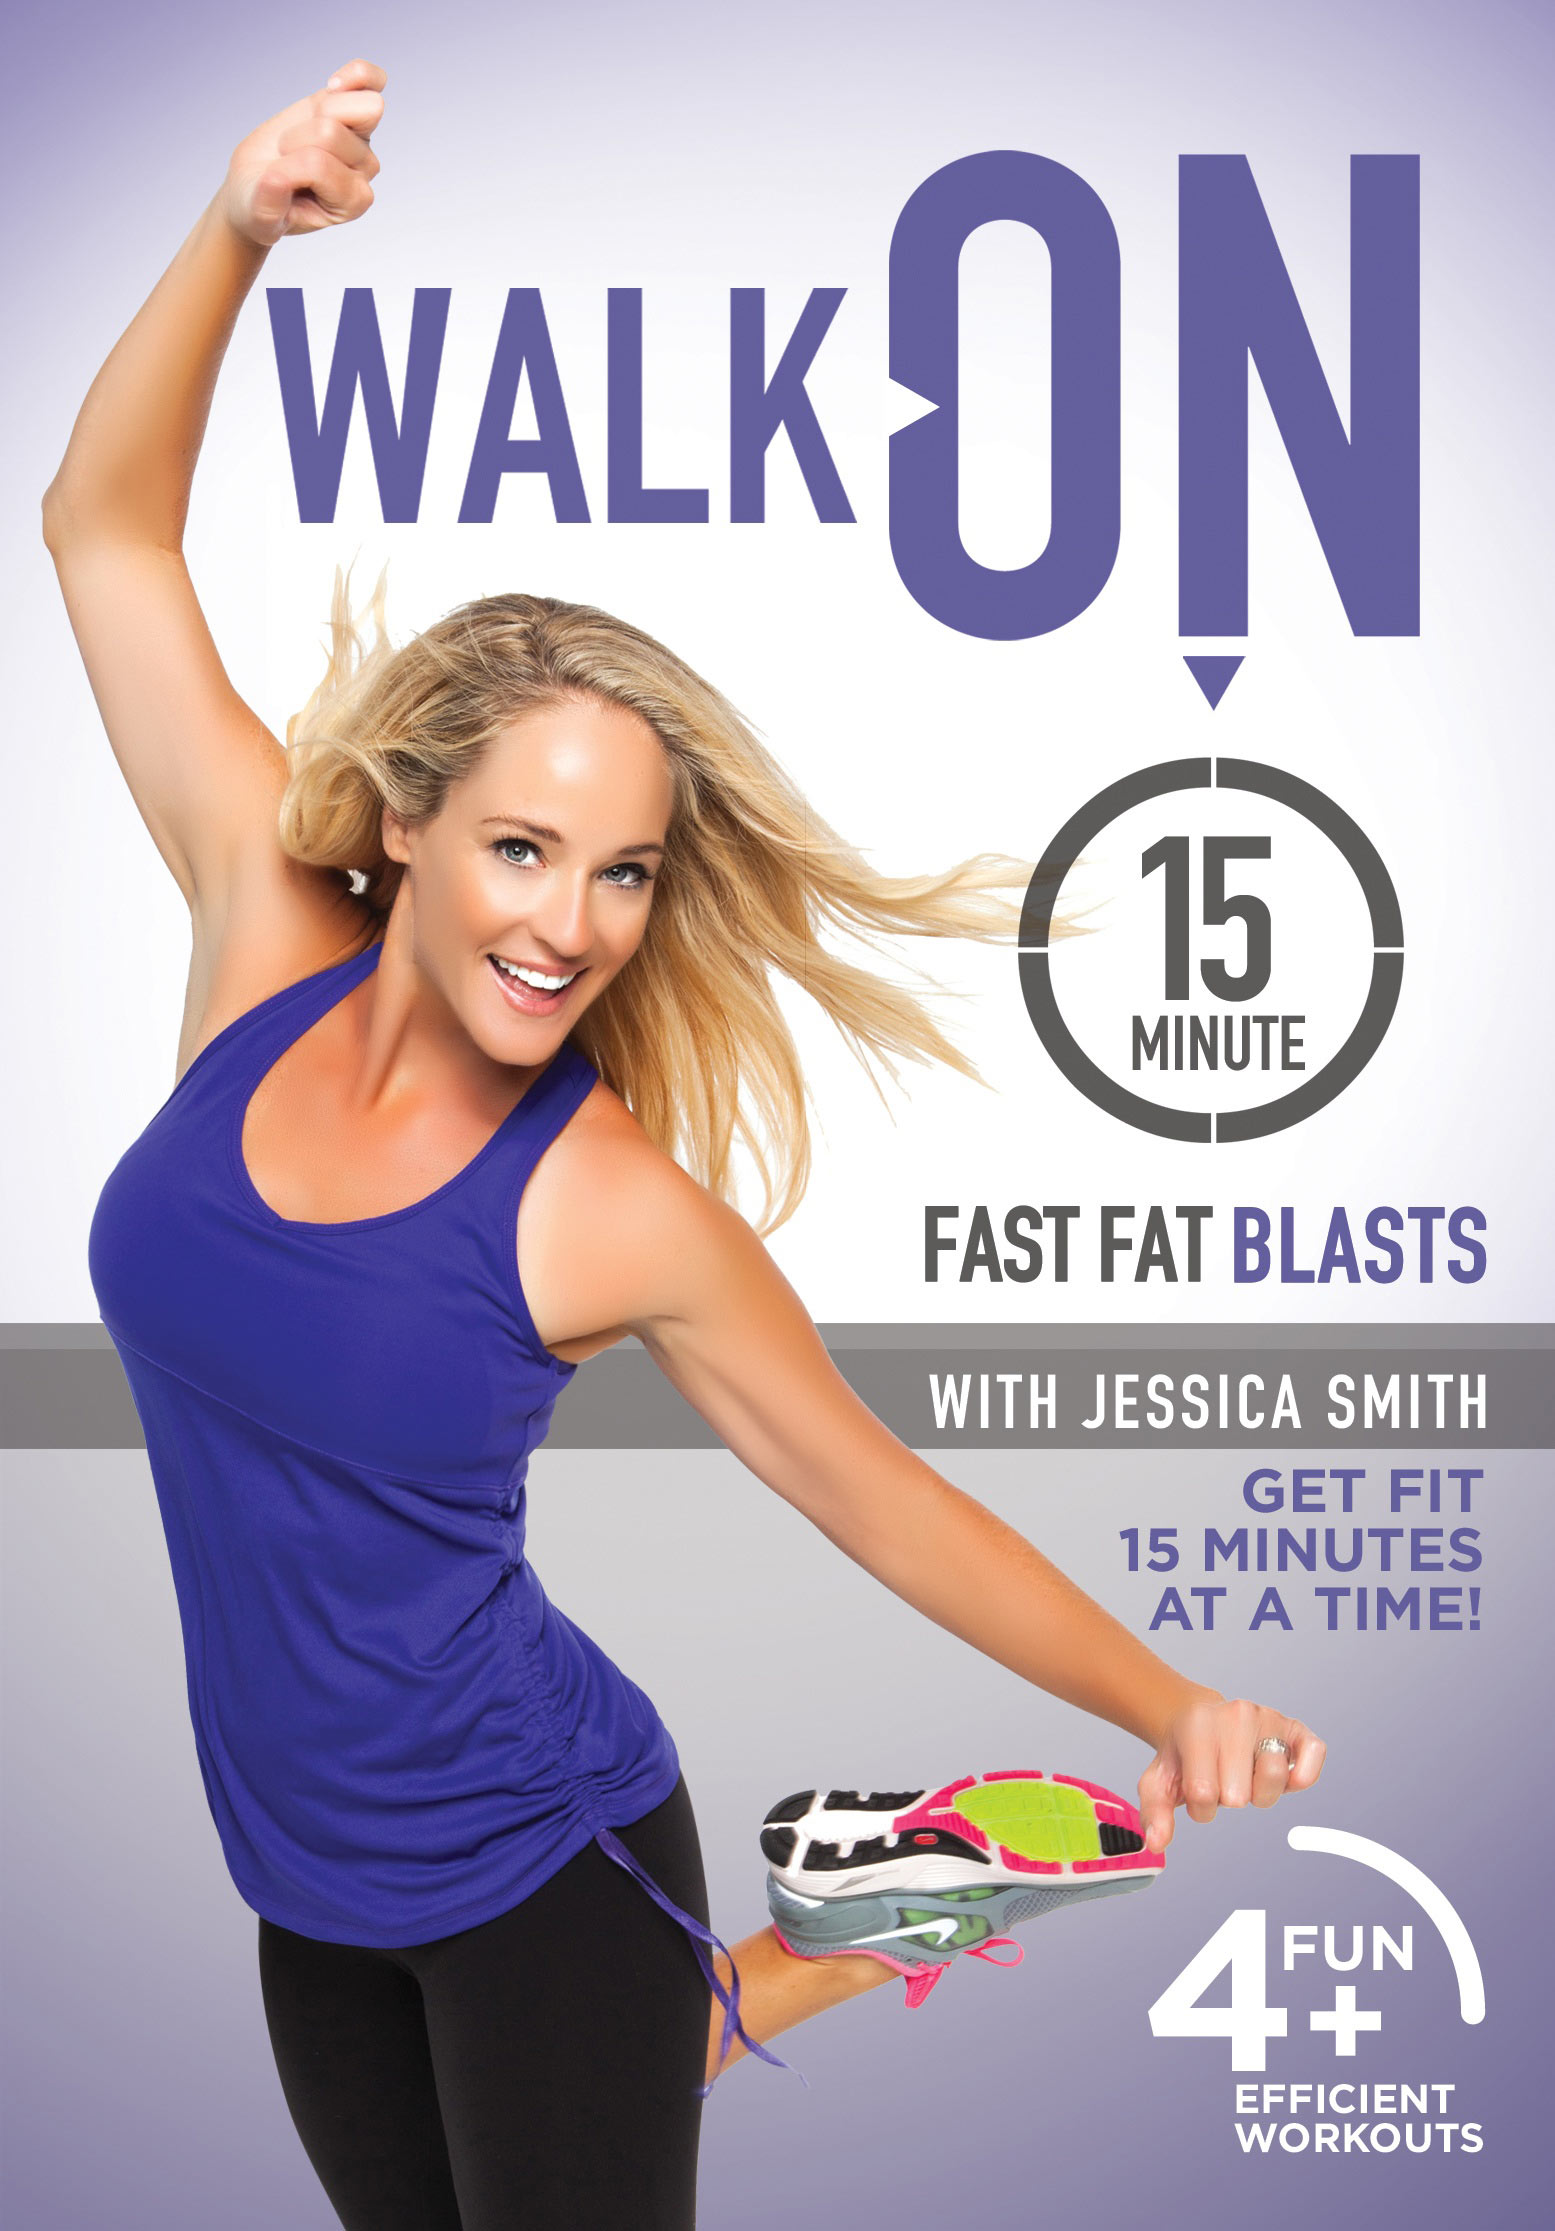 Walk On: 15 Minute Fast Fat Blasts